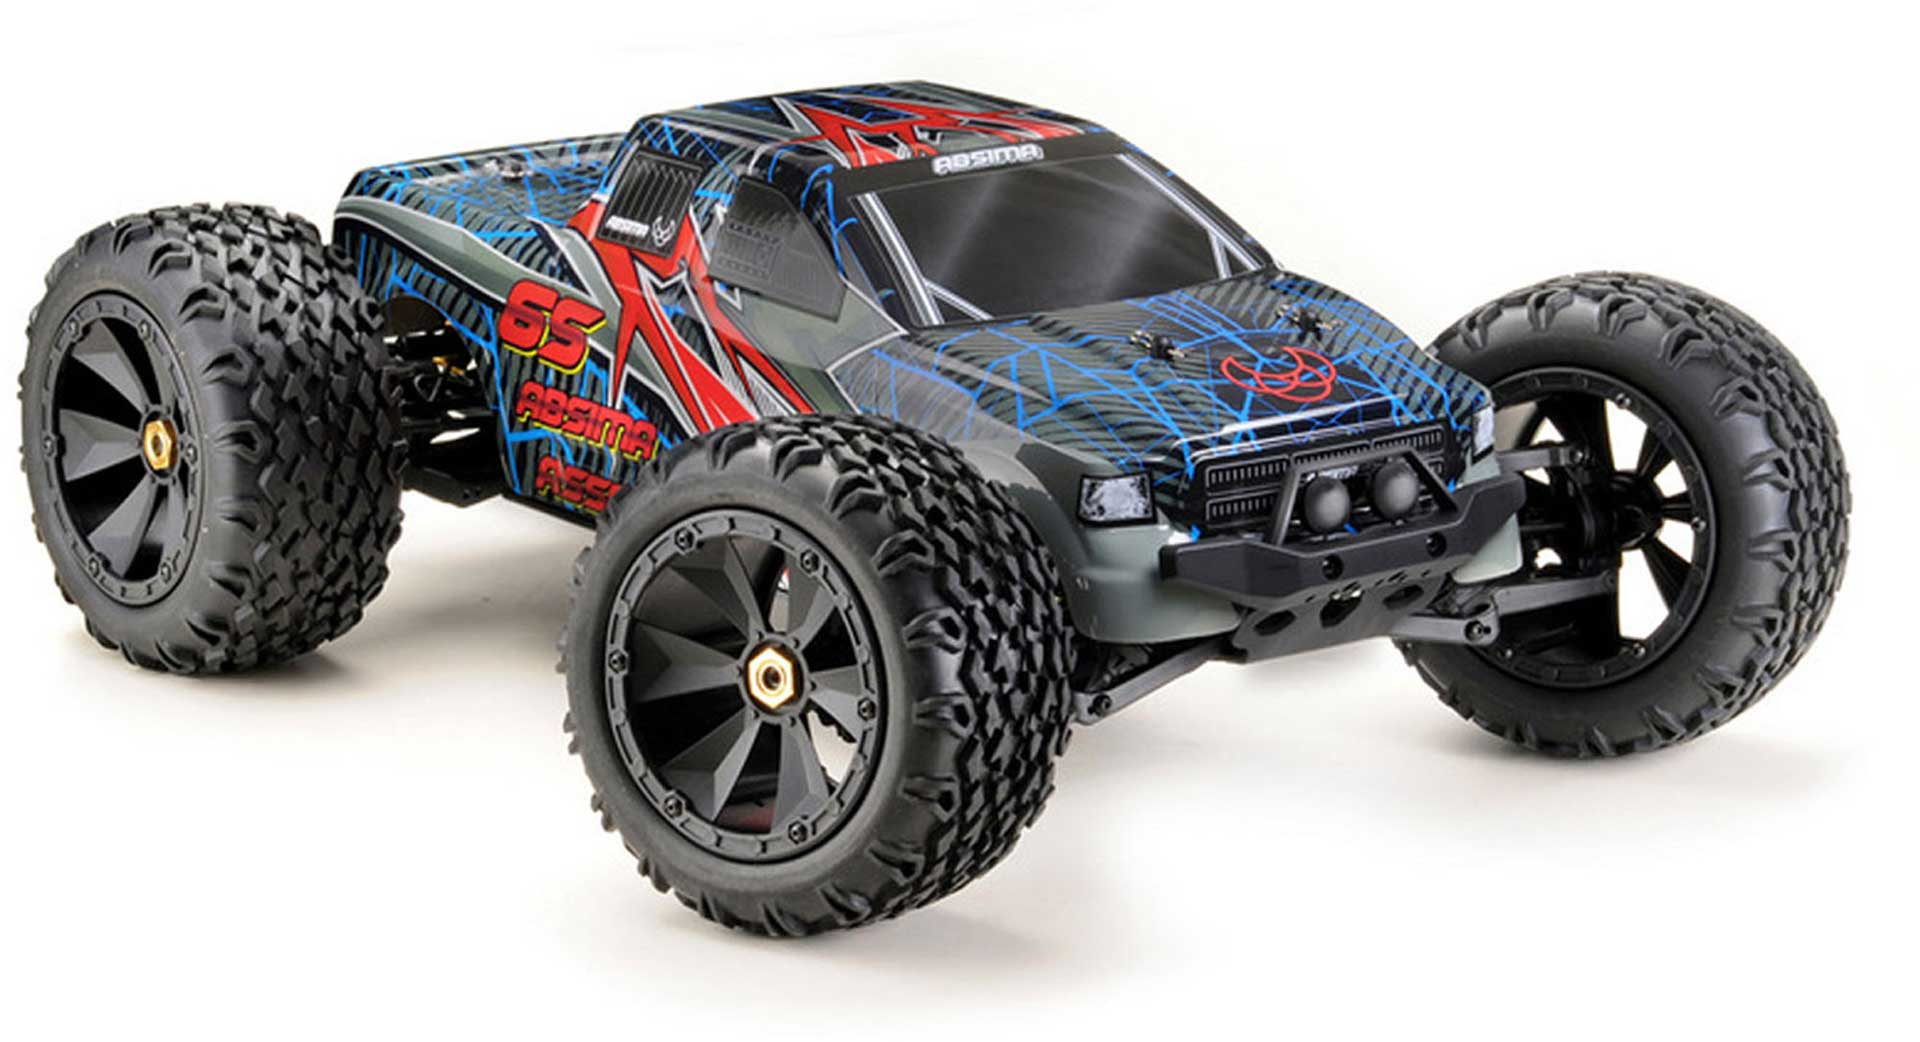 ABSIMA ASSASSIN GEN2.0 MONSTER TRUCK 6S RTR 1/8